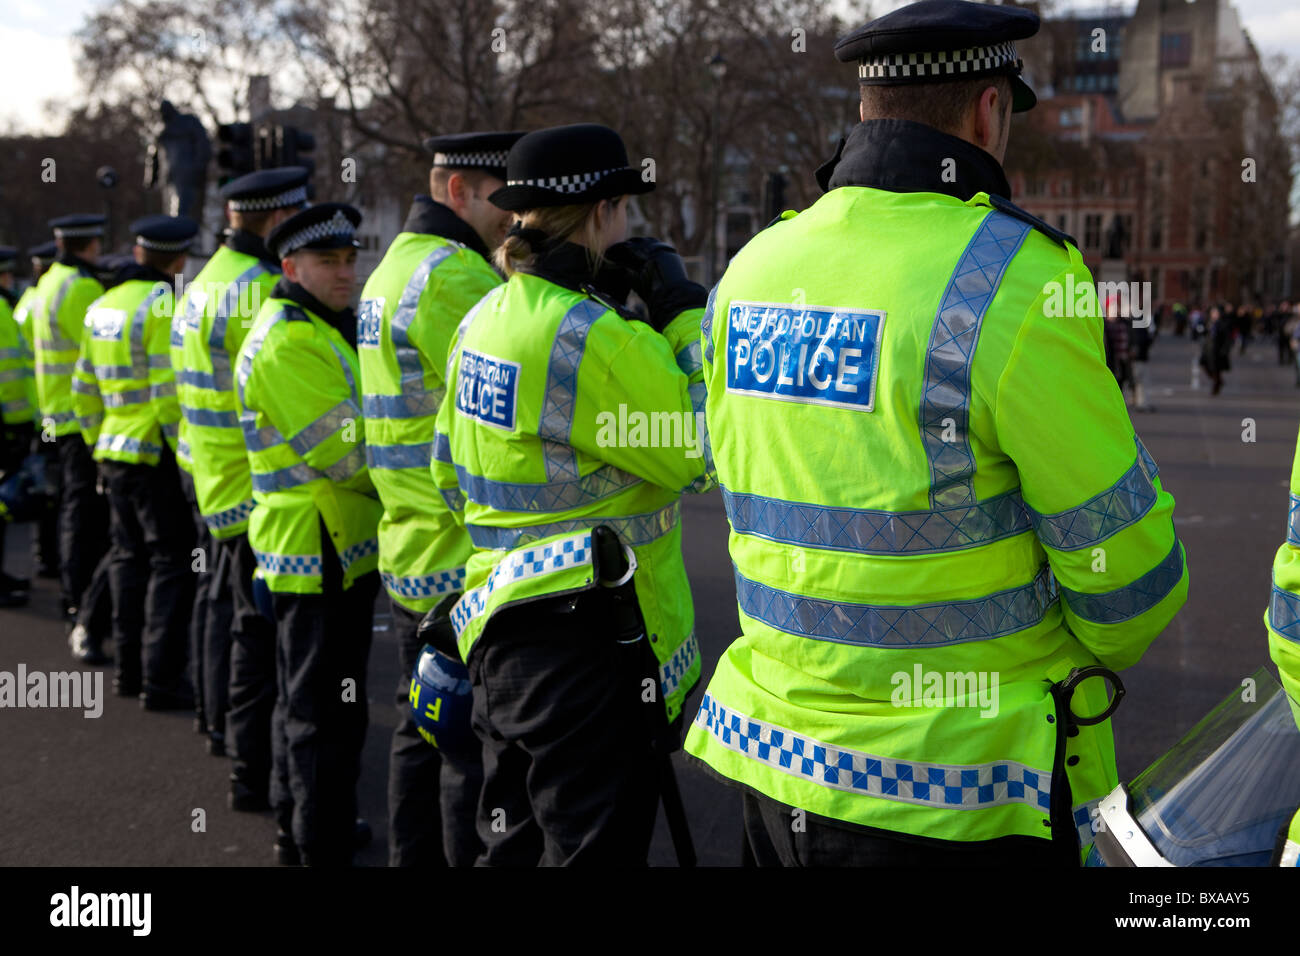 Line of metropolitan police in Parliament Square during tuition fees demonstration. - Stock Image